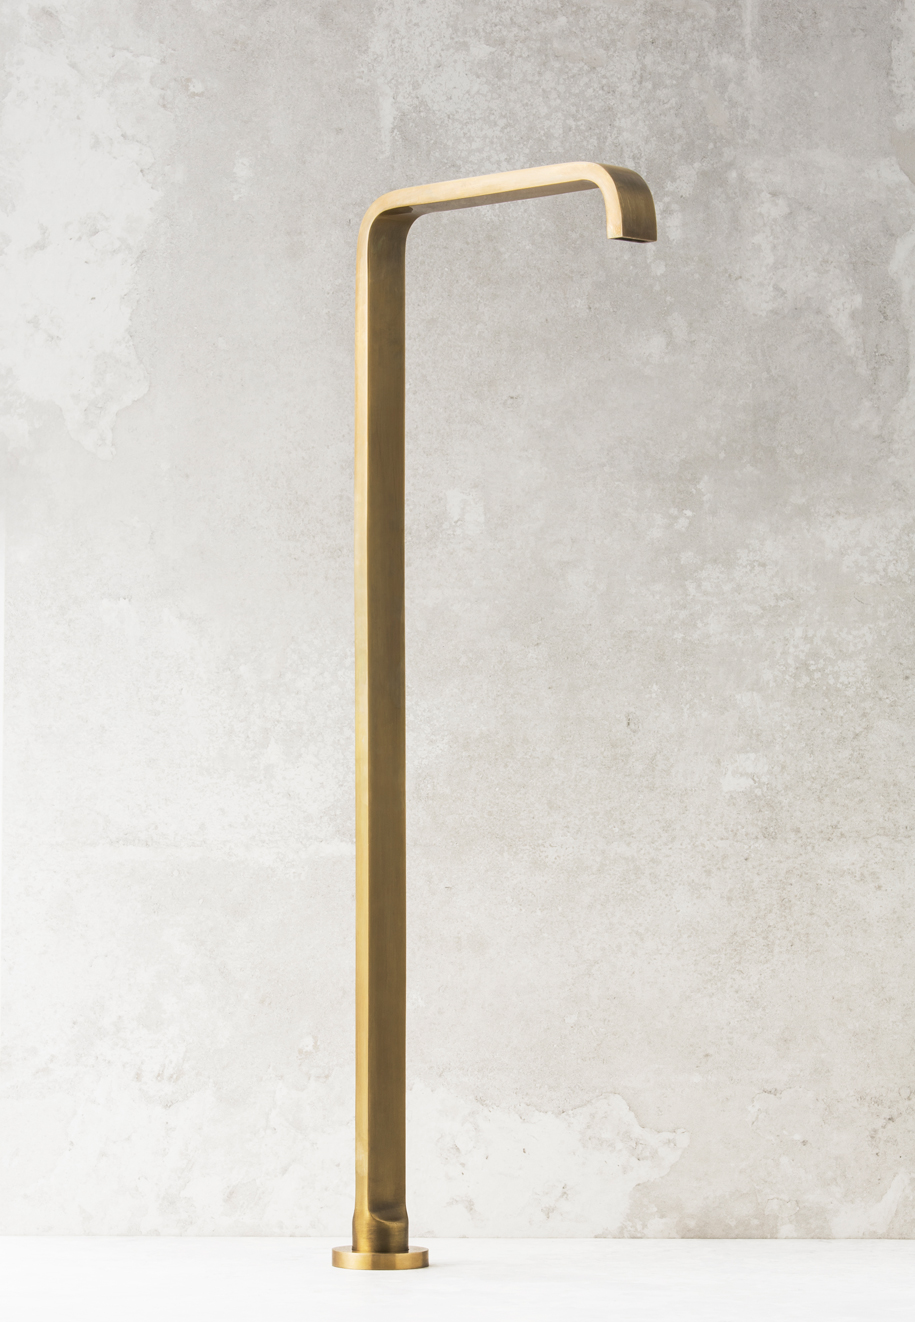 Rogerseller_Natural-Elements_Pinch-Bath-Outlet_Burnished-Brass